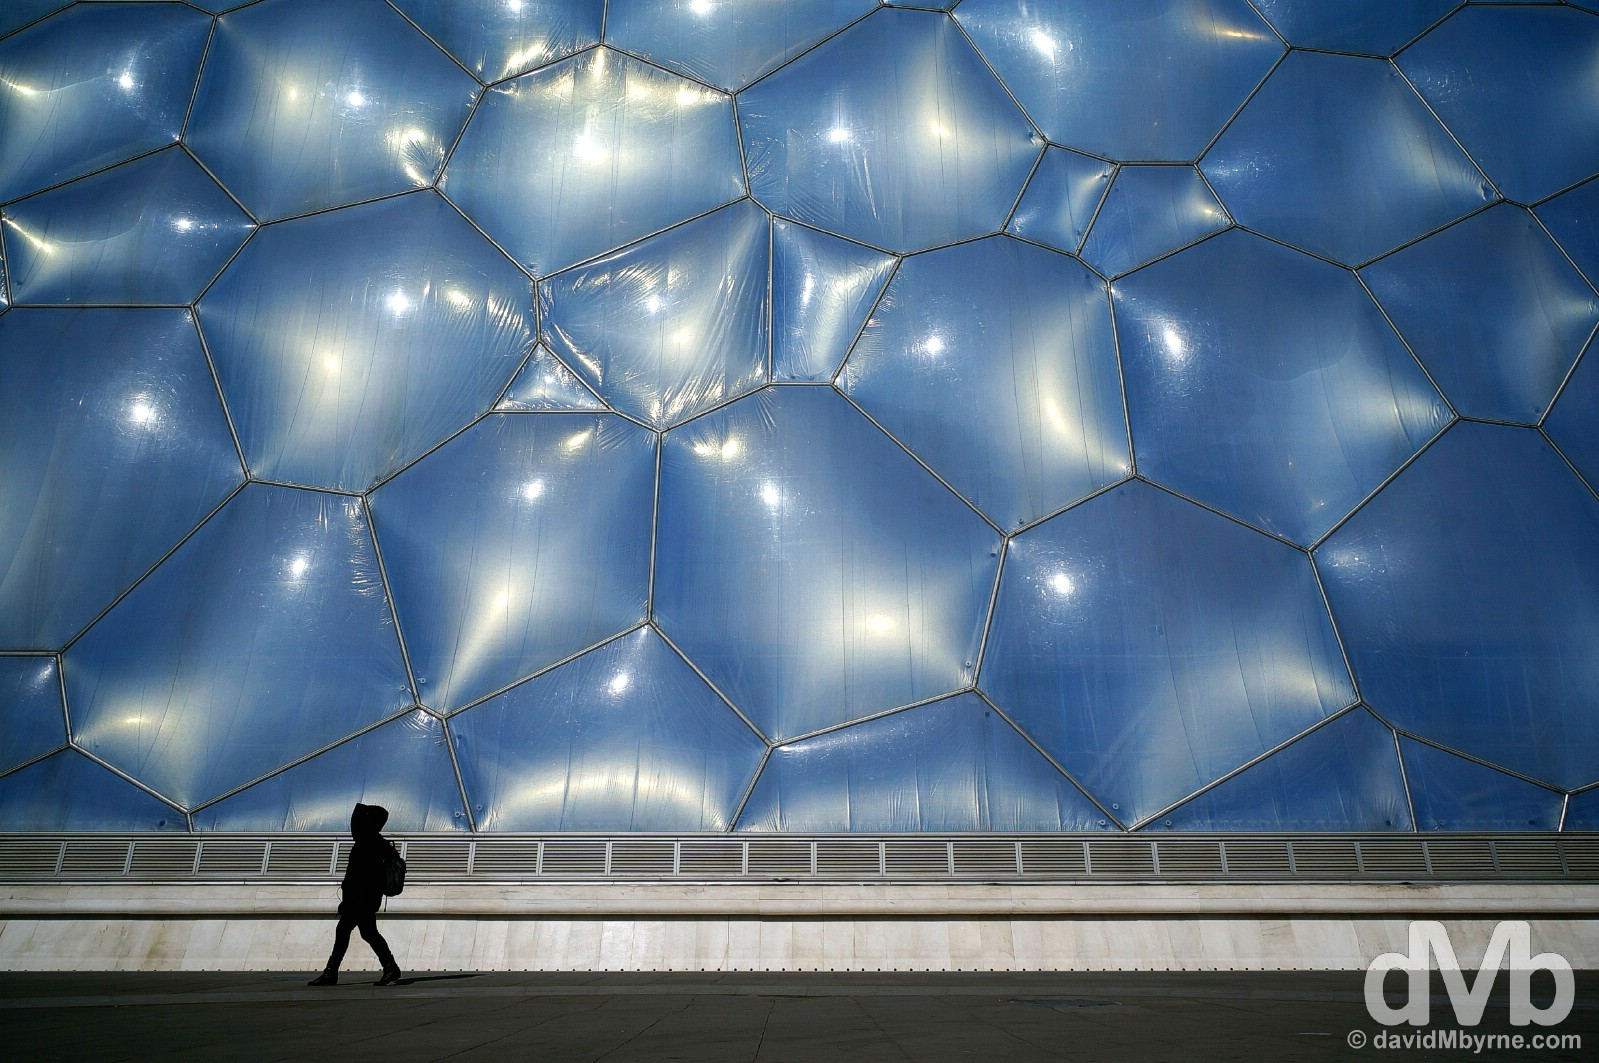 Walking past the National Aquatic Centre, a.k.a. the Water Cube, in Beijing Olympic Park, Beijing, China. February 5, 2015.